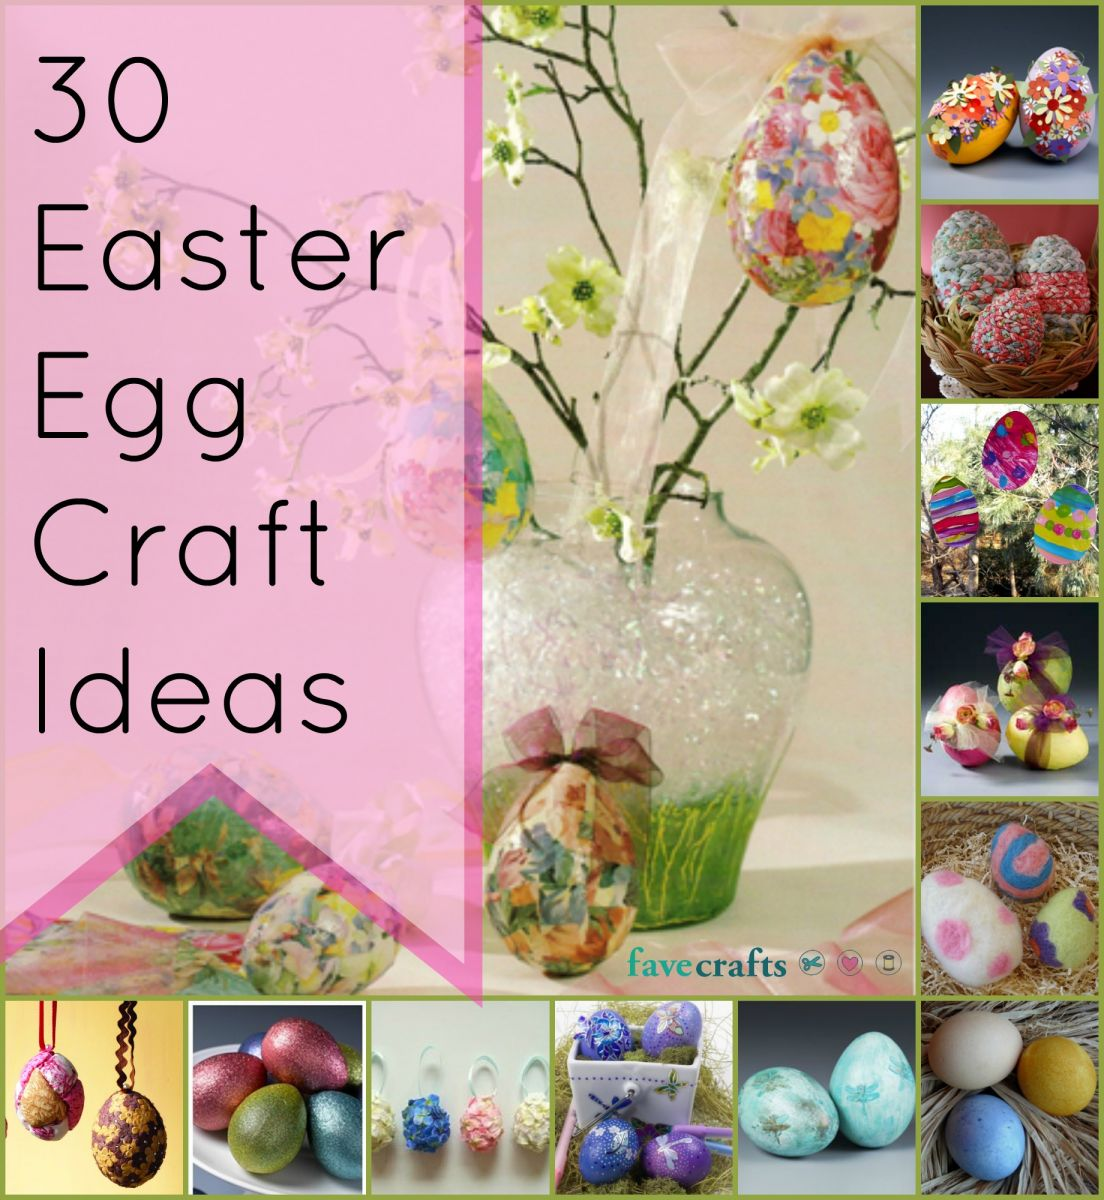 30 Easter Egg Craft Ideas